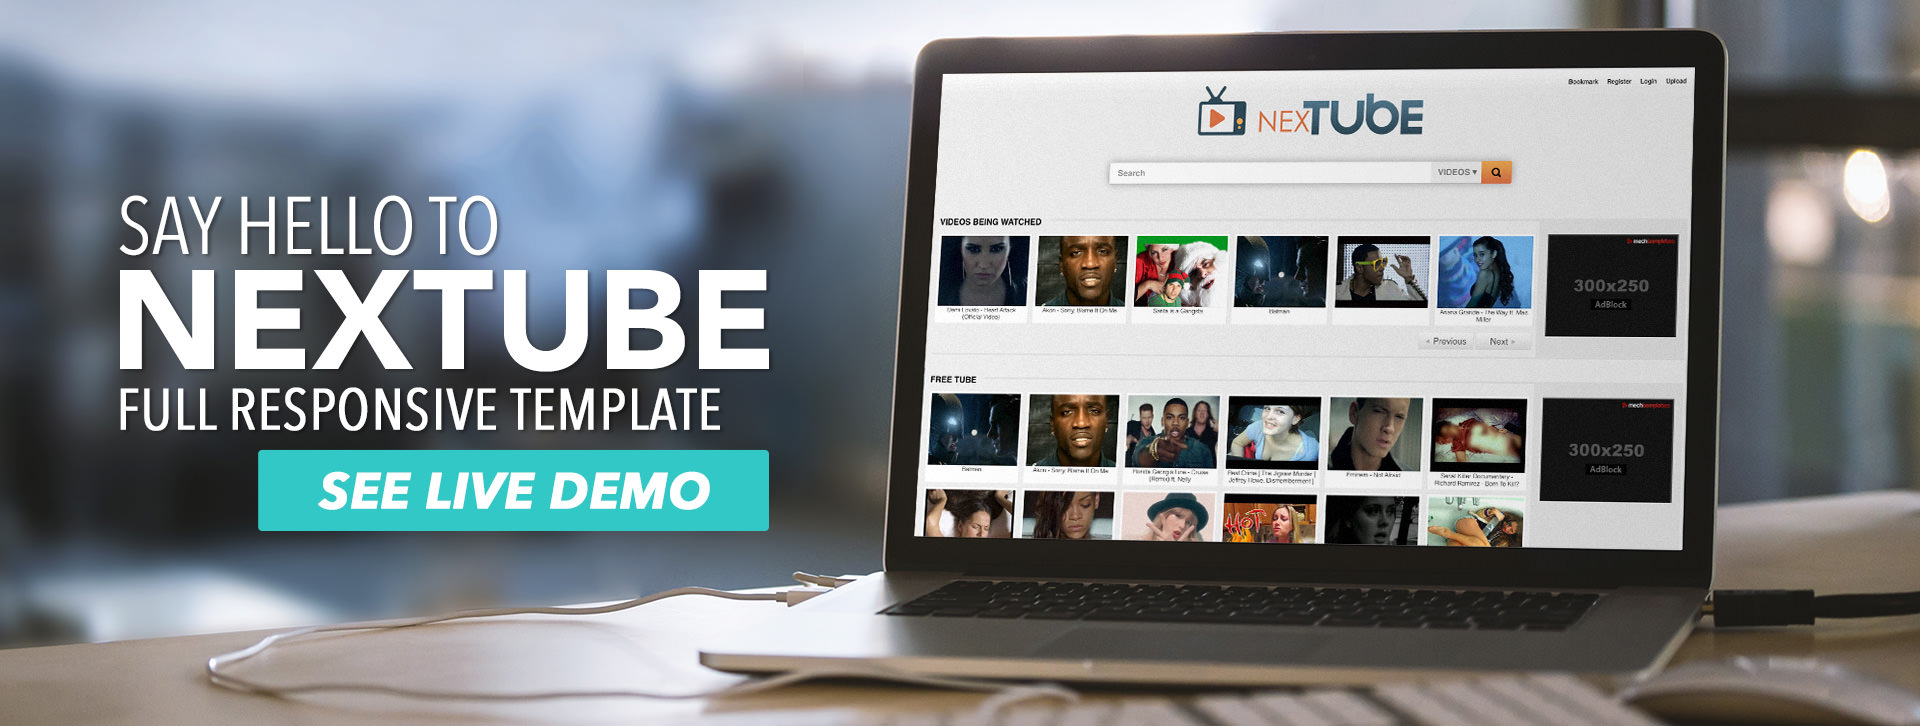 Say hello to NEXTUBE - Full Responsive Template